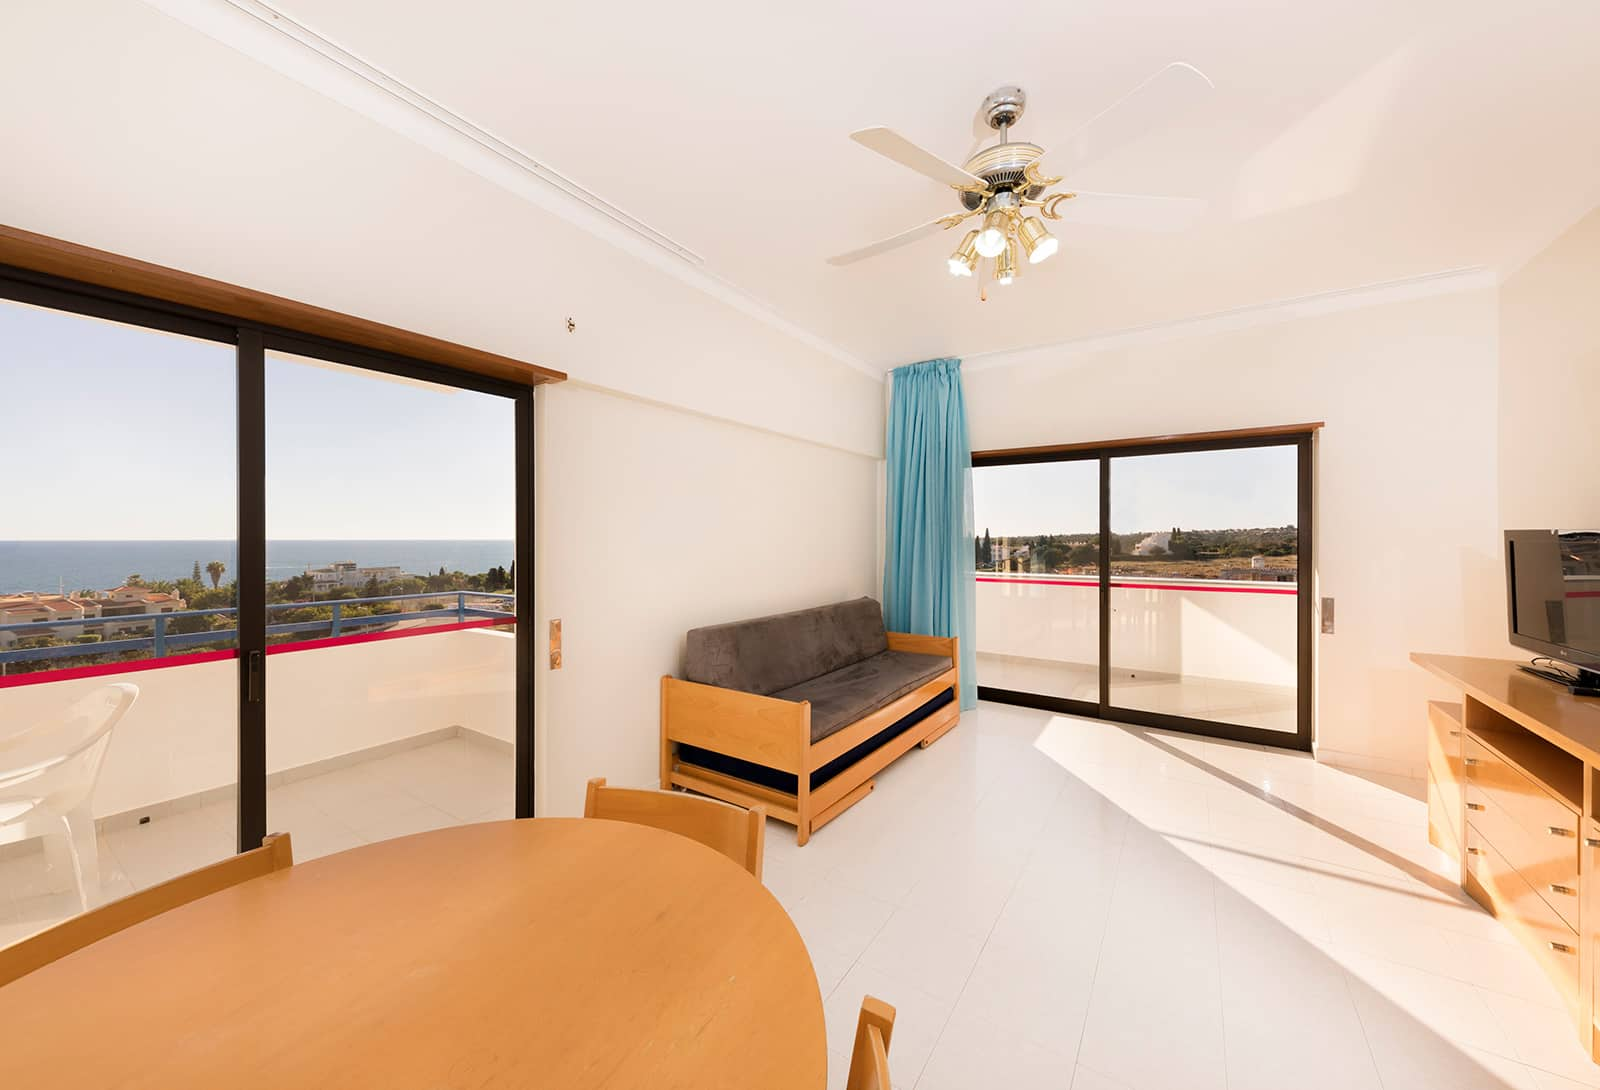 Rooms at Be Smart Terrace Algarve appartments